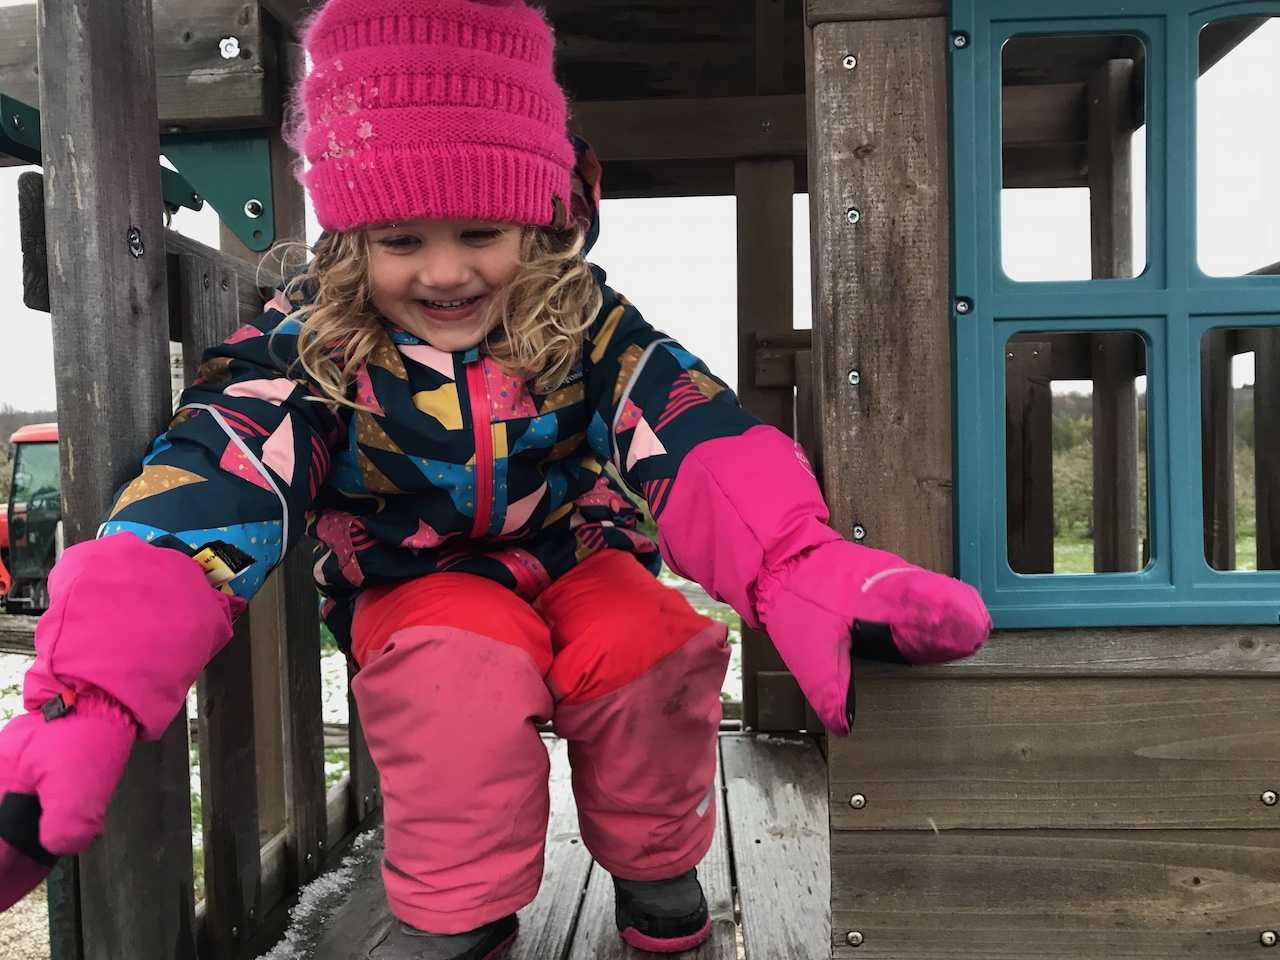 Snow-Pile-Patagonias-Recycled-Jackets-and-Bibs-for-Youngsters-lifestyle